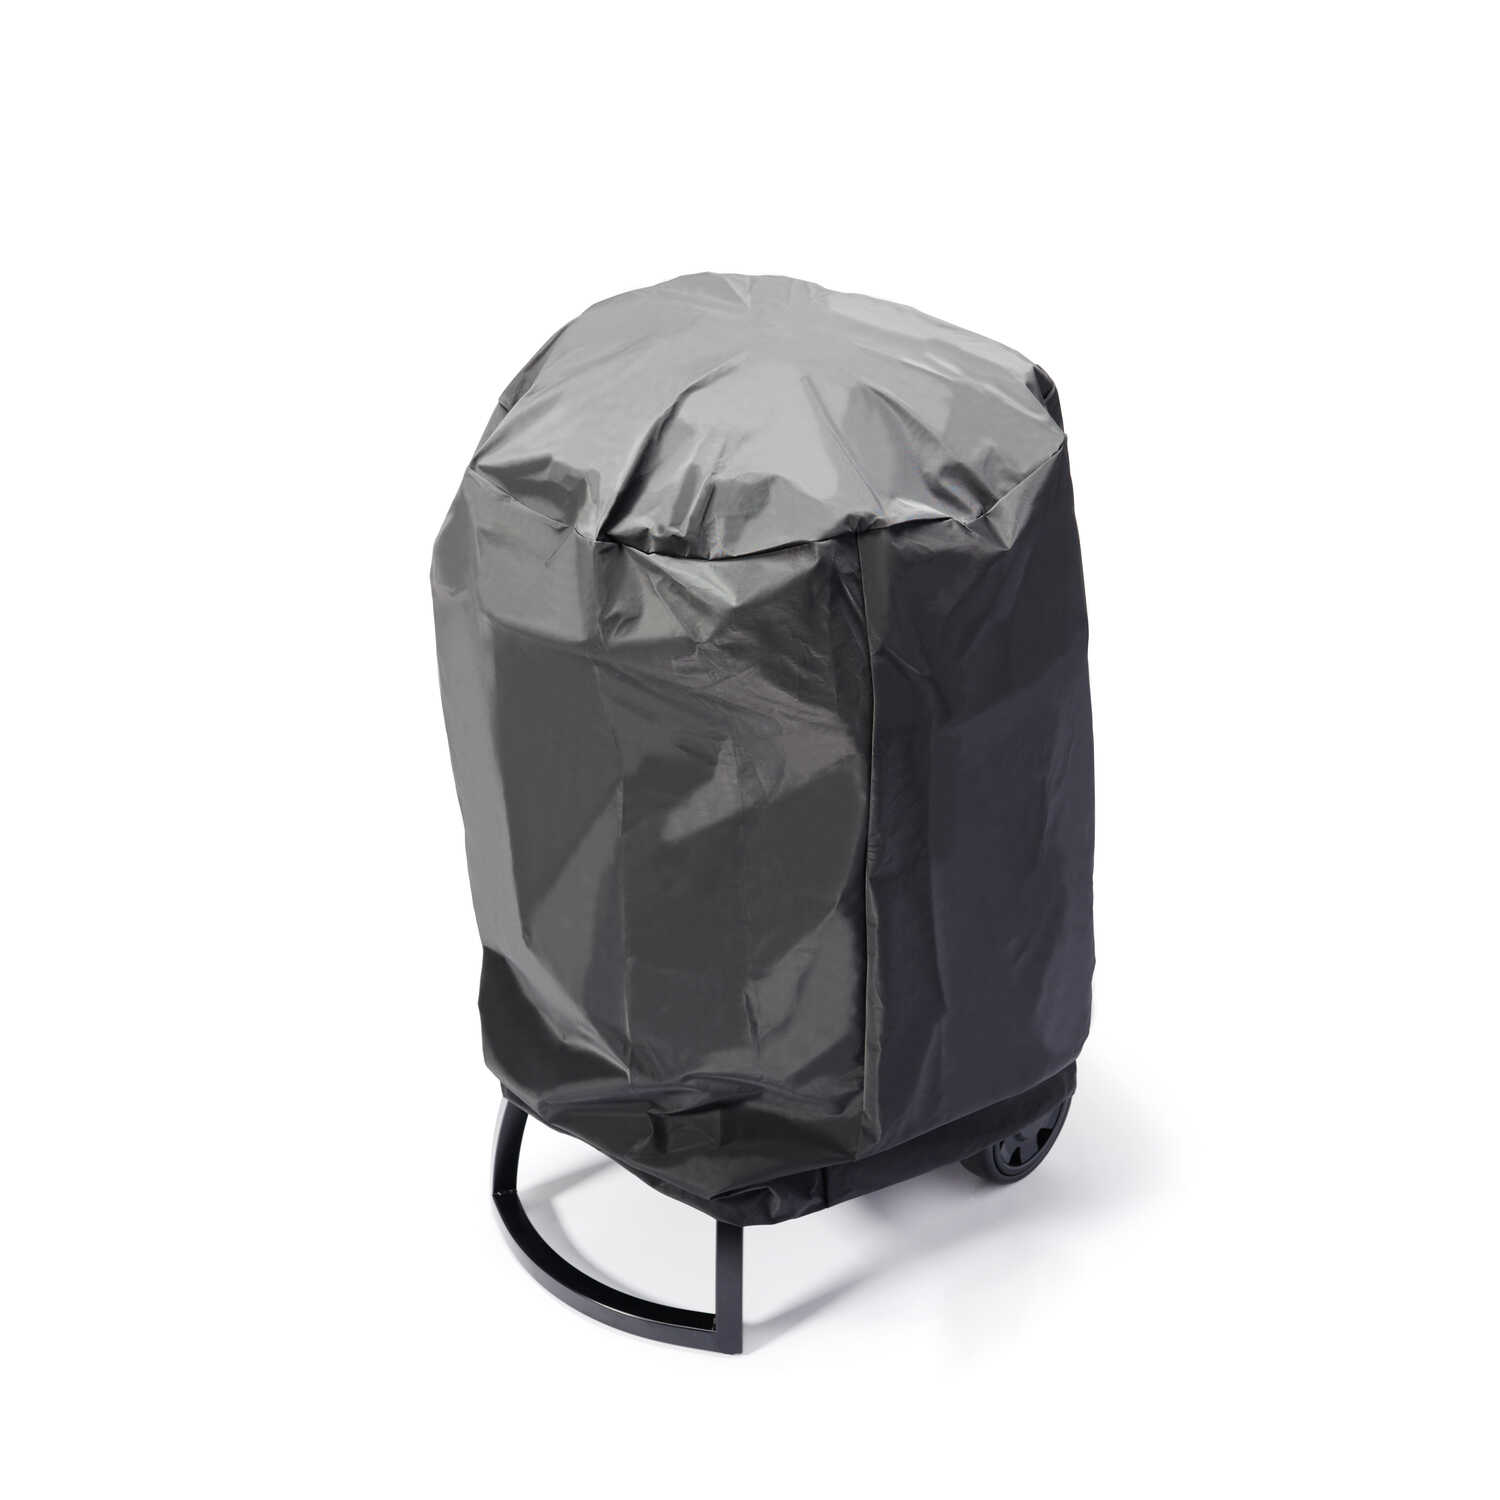 Grillmark  Black  Grill Cover  42 in. H x 28 in. W x 28 in. D For Fits Kettle or Kamado Grills